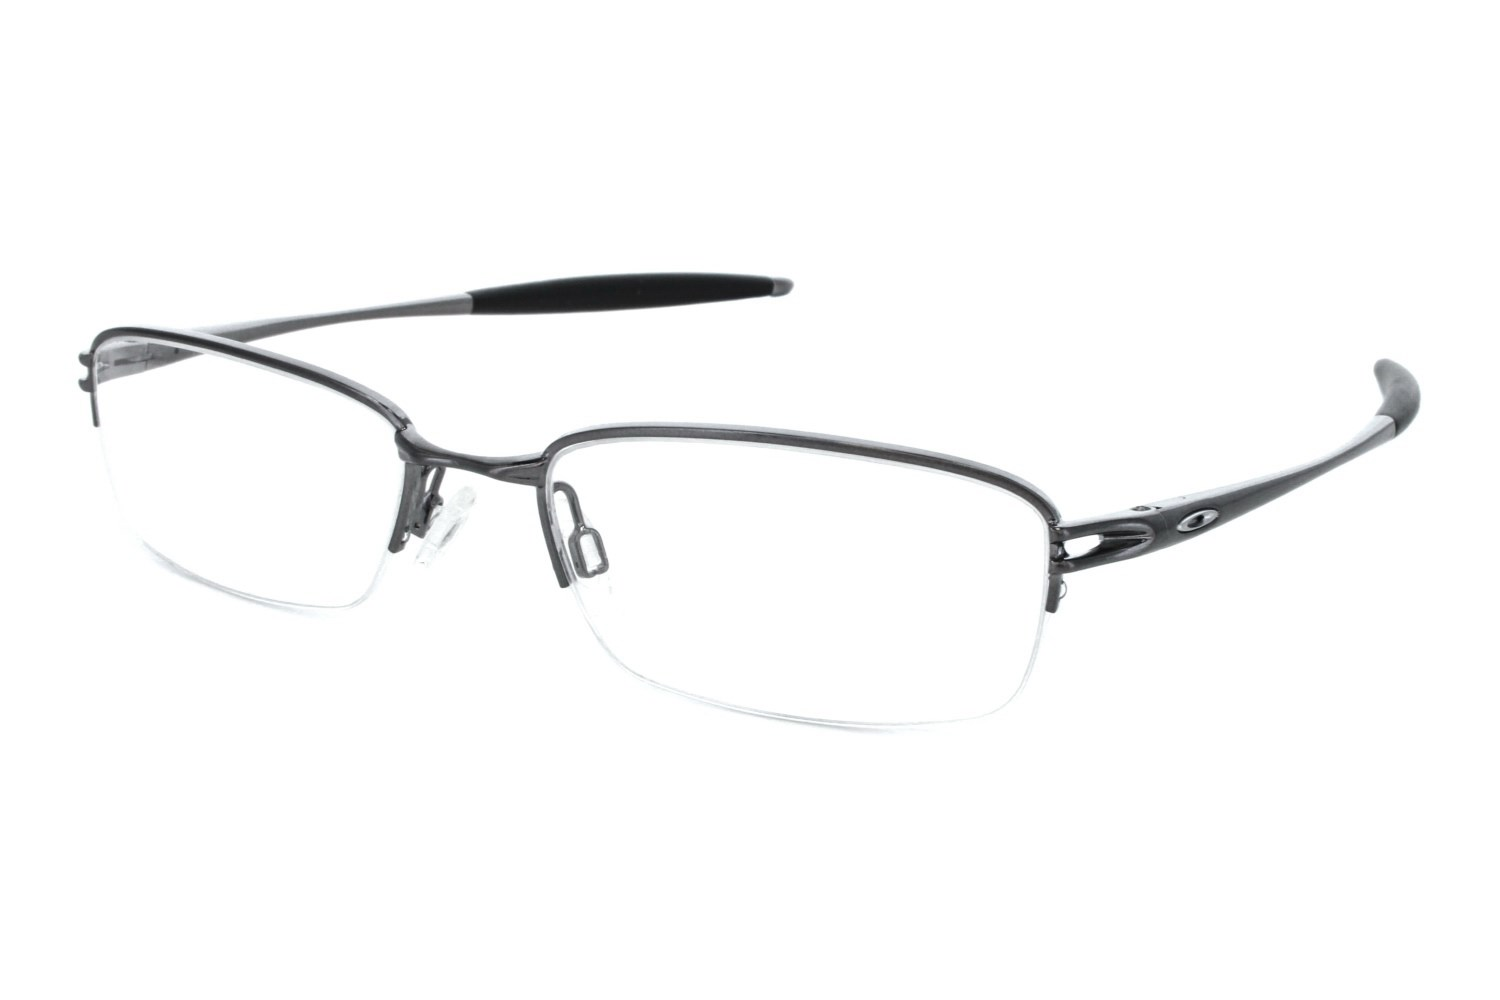 Oakley Valve 53 Prescription Eyeglasses Frames